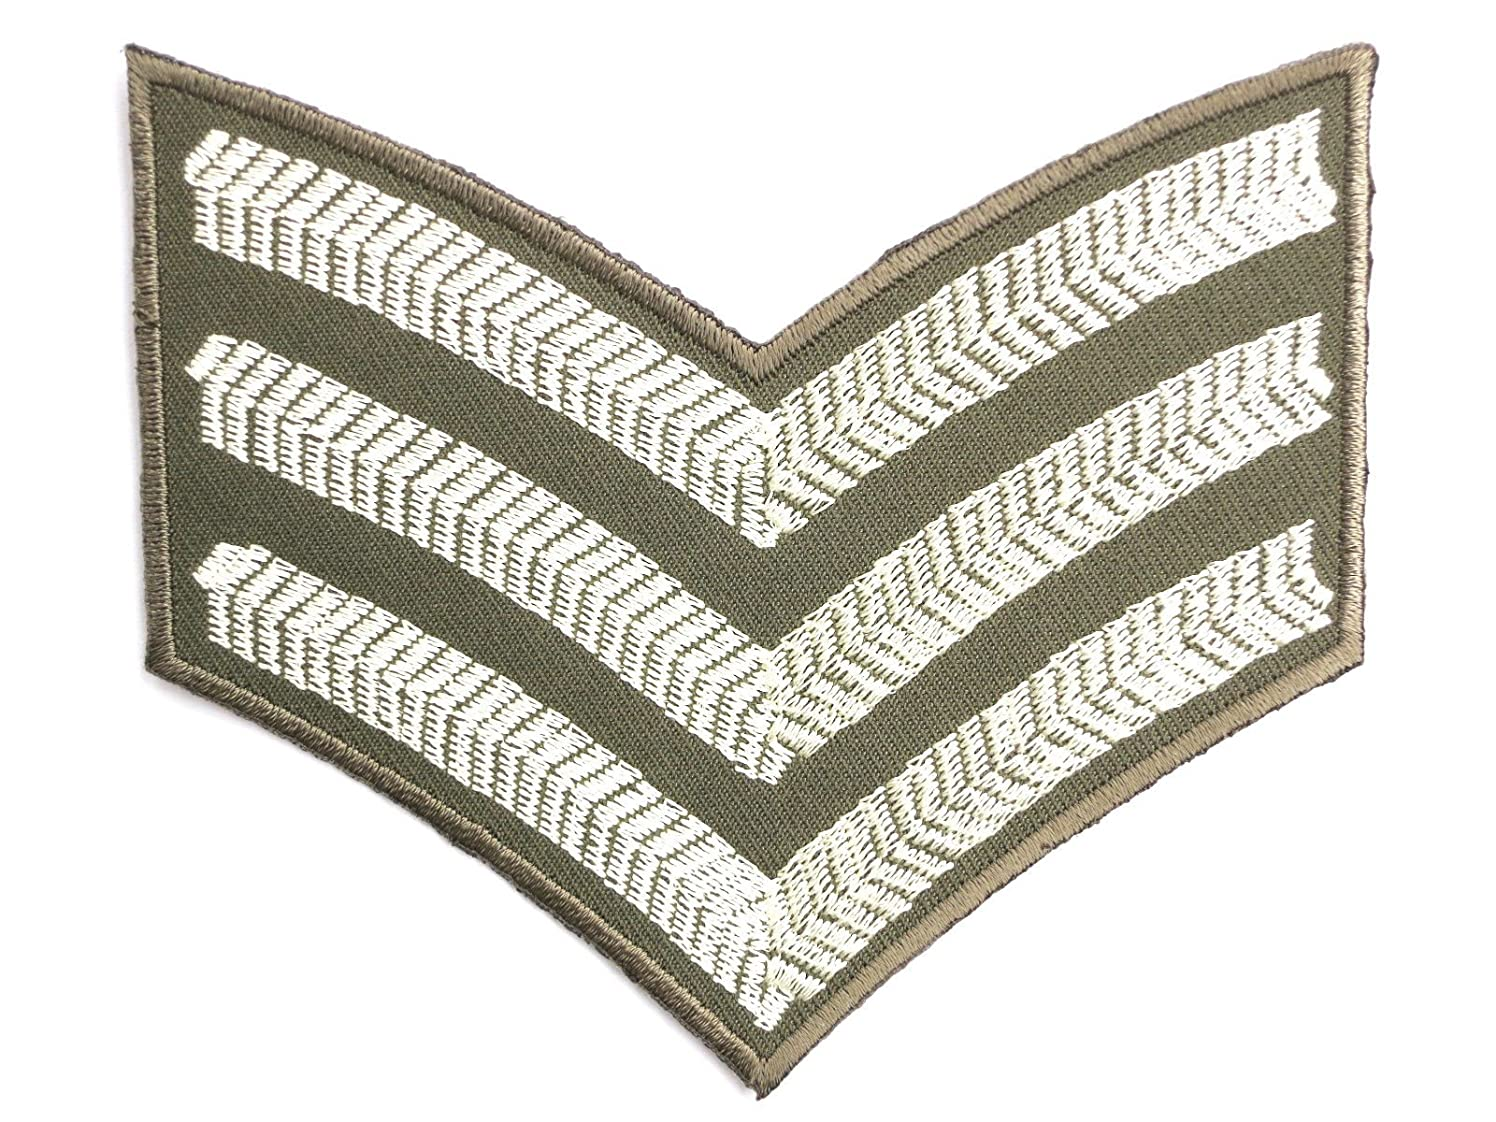 US Sergeant Stripes Army Military WW2 Iron On Sew On Embroidered Patch Approx: 4.2